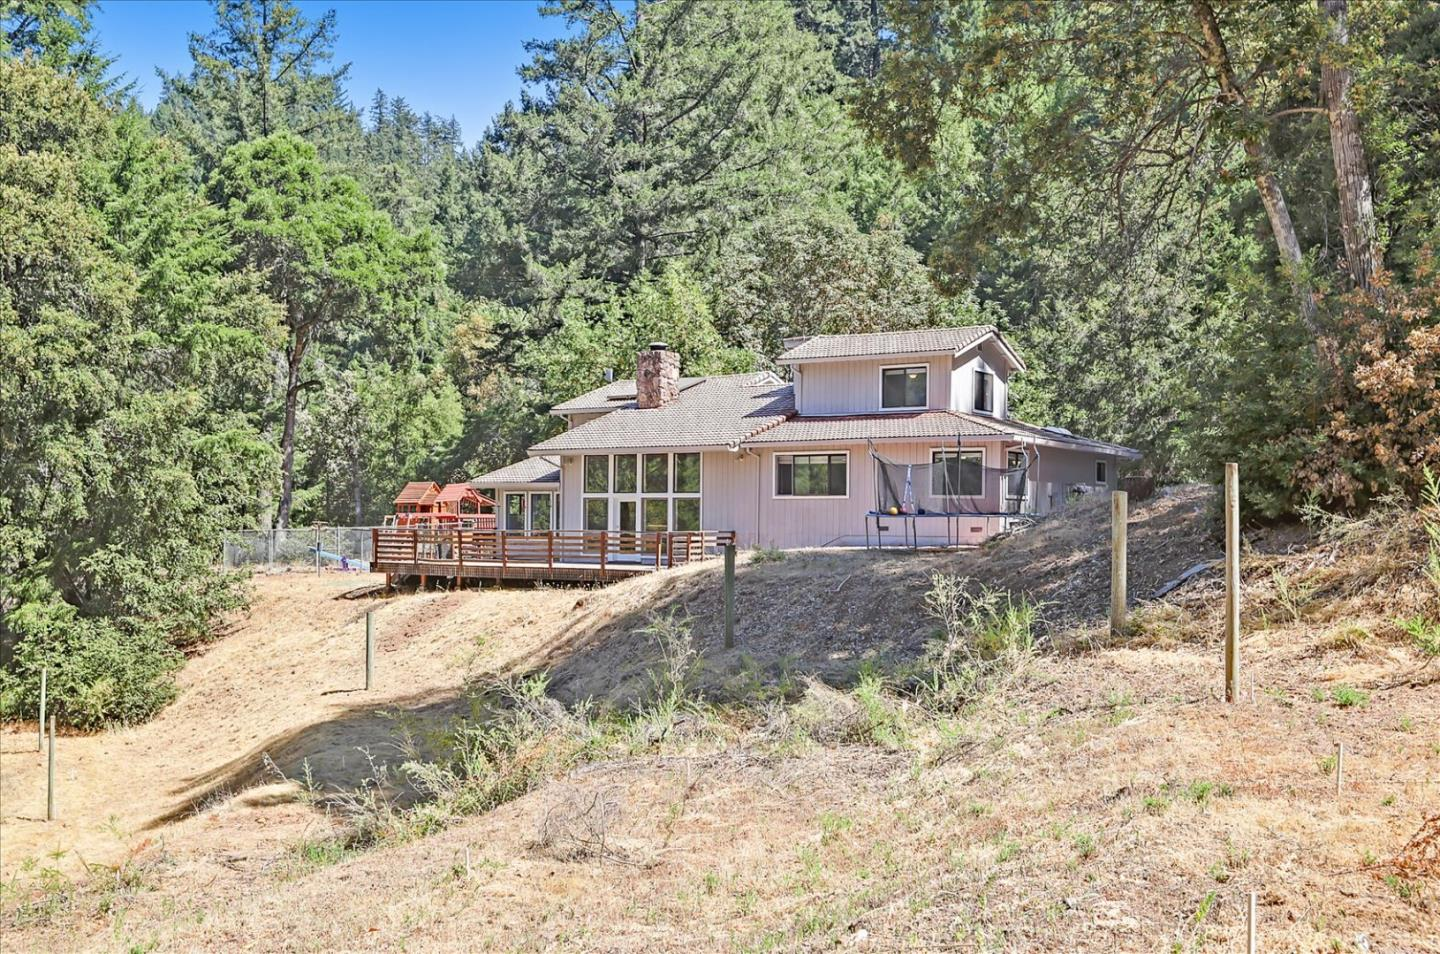 Welcome home to 12340 Footpath Trail in Los Gatos! Enjoy peace & quiet among the redwoods on 13.4 acres in this 5 bed & 3 bath home in the gated Indian Rock Ranch Community. Top Los Gatos-Saratoga High School District (buyer to verify). Remodeled in 2017 with NEW water heater, electrical panel, furnace, air conditioning, LED lighting, pressure pump, whole-house water filtration system, ceiling fans. Brazilian Cherry hardwood floors with inviting formal living & dining rooms with vaulted ceilings & easy access to the expansive deck. Kitchen features quartz countertops, subway tile backsplash, & island with gas stove. Hall bathroom features radiant heated floor. Bring your imagination with large secondary flat area for possible ADU or guest house (buyer to verify). San Lorenzo river with waterfall & natural springs on property. Nearby parks: Castle Rock, Big Basin, & Saratoga Gap. 8.5 miles to Downtown Saratoga with easy access to Silicon Valley via Skyline, Hwy 9 & 17. Dont miss out!